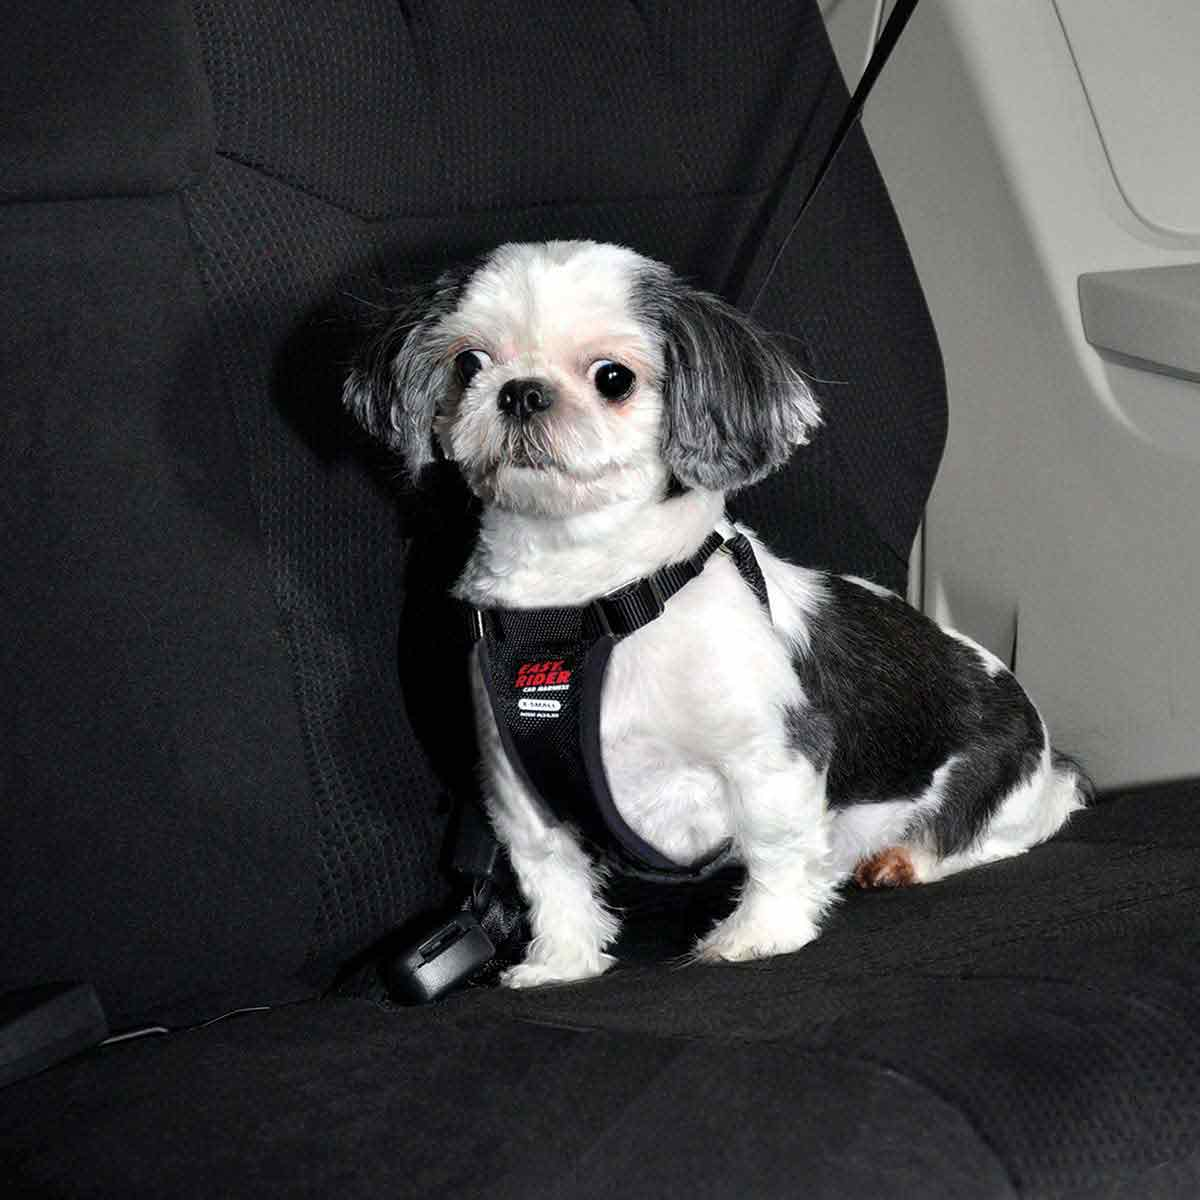 Dog Wearing Coastal Easy Rider Car Harness for Xsmall Dogs